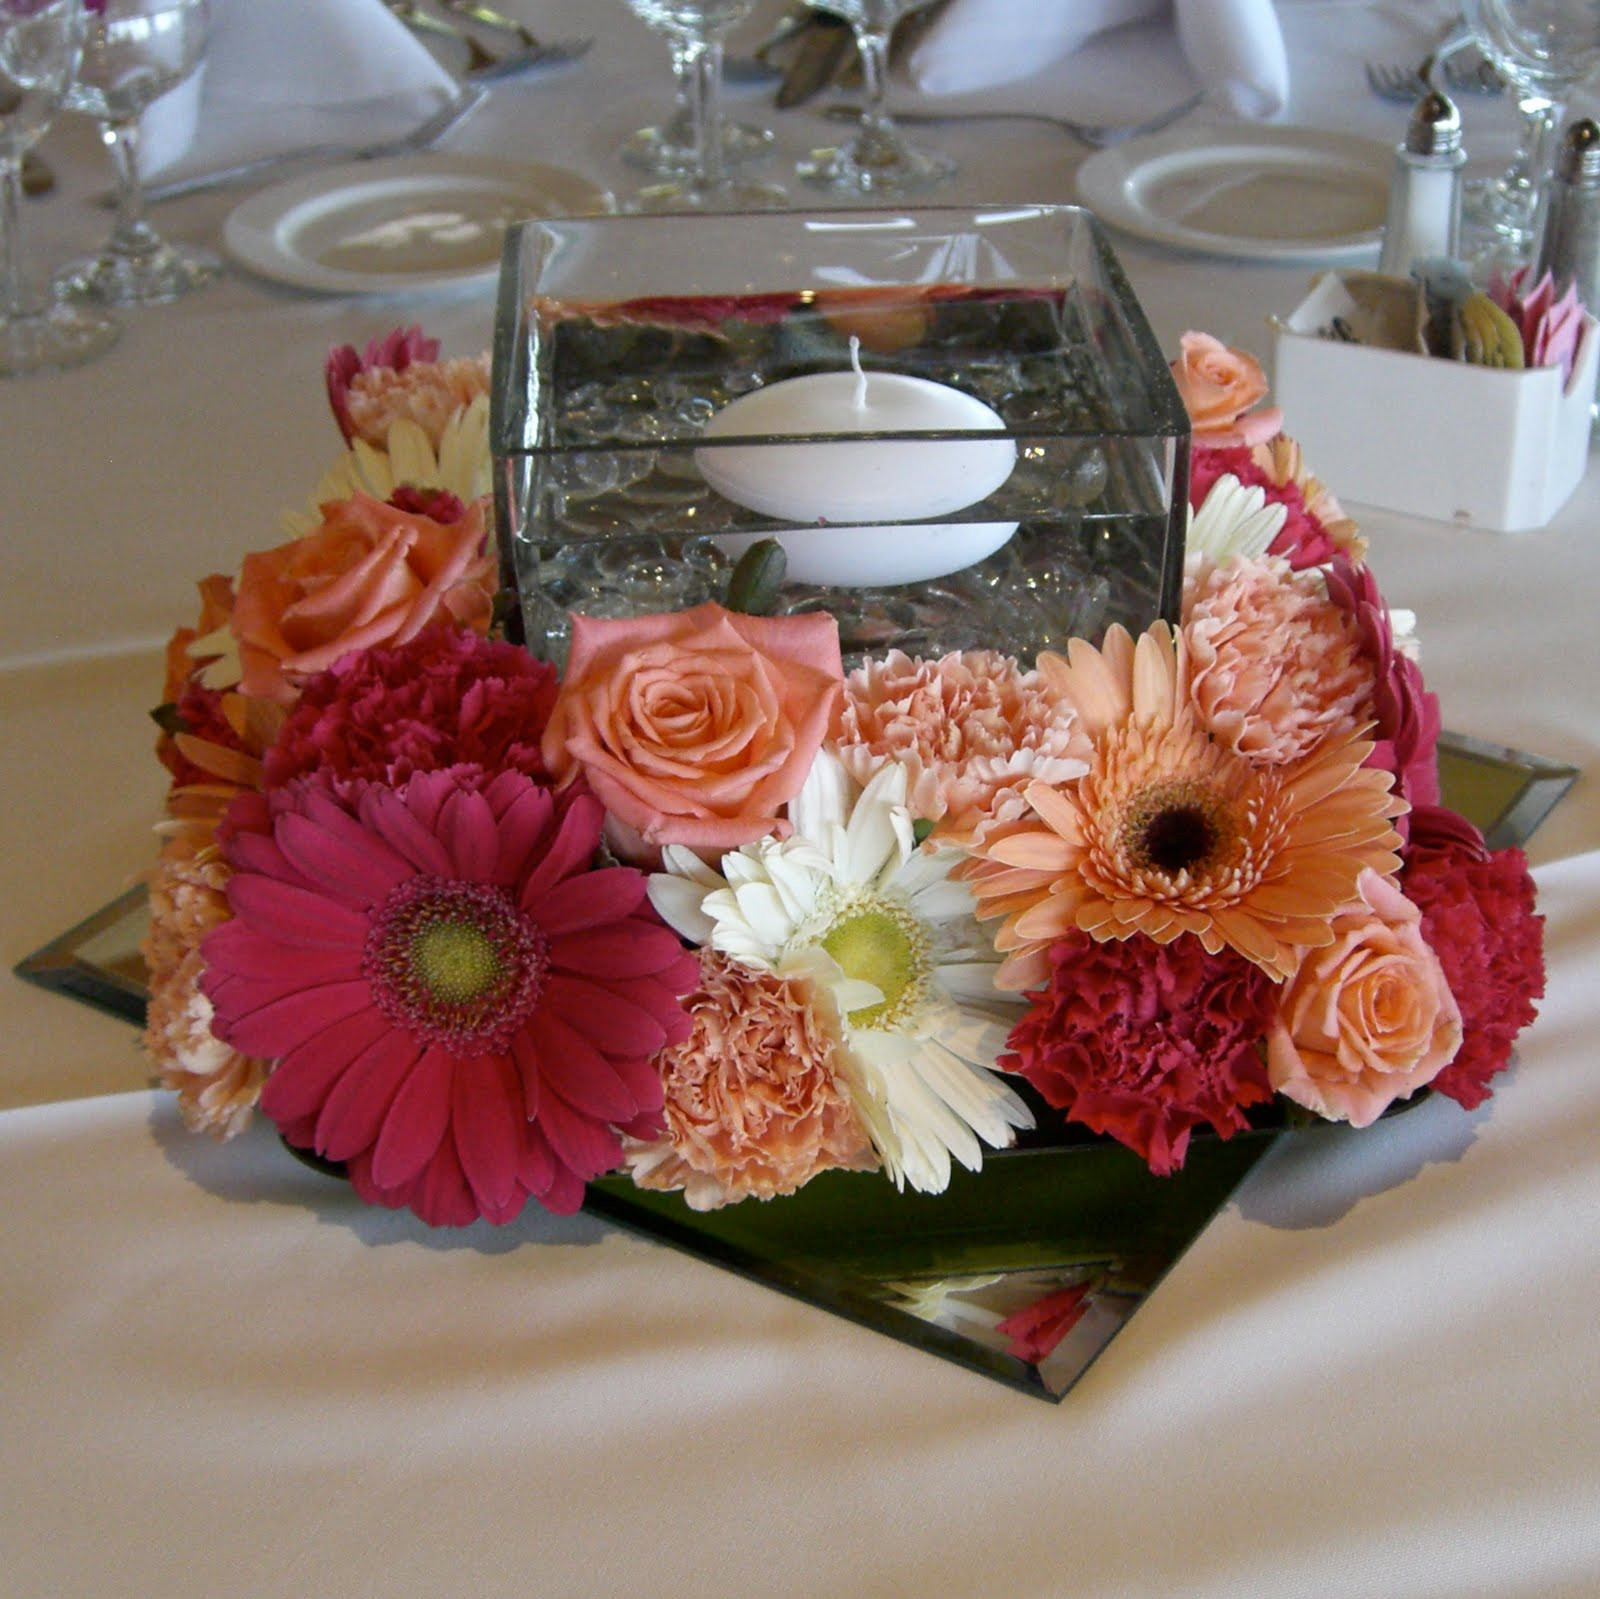 short square vase of mirrored square vase with roses vase and cellar image avorcor com within graceful mirror center pieces featuring pink orchids centerpieces